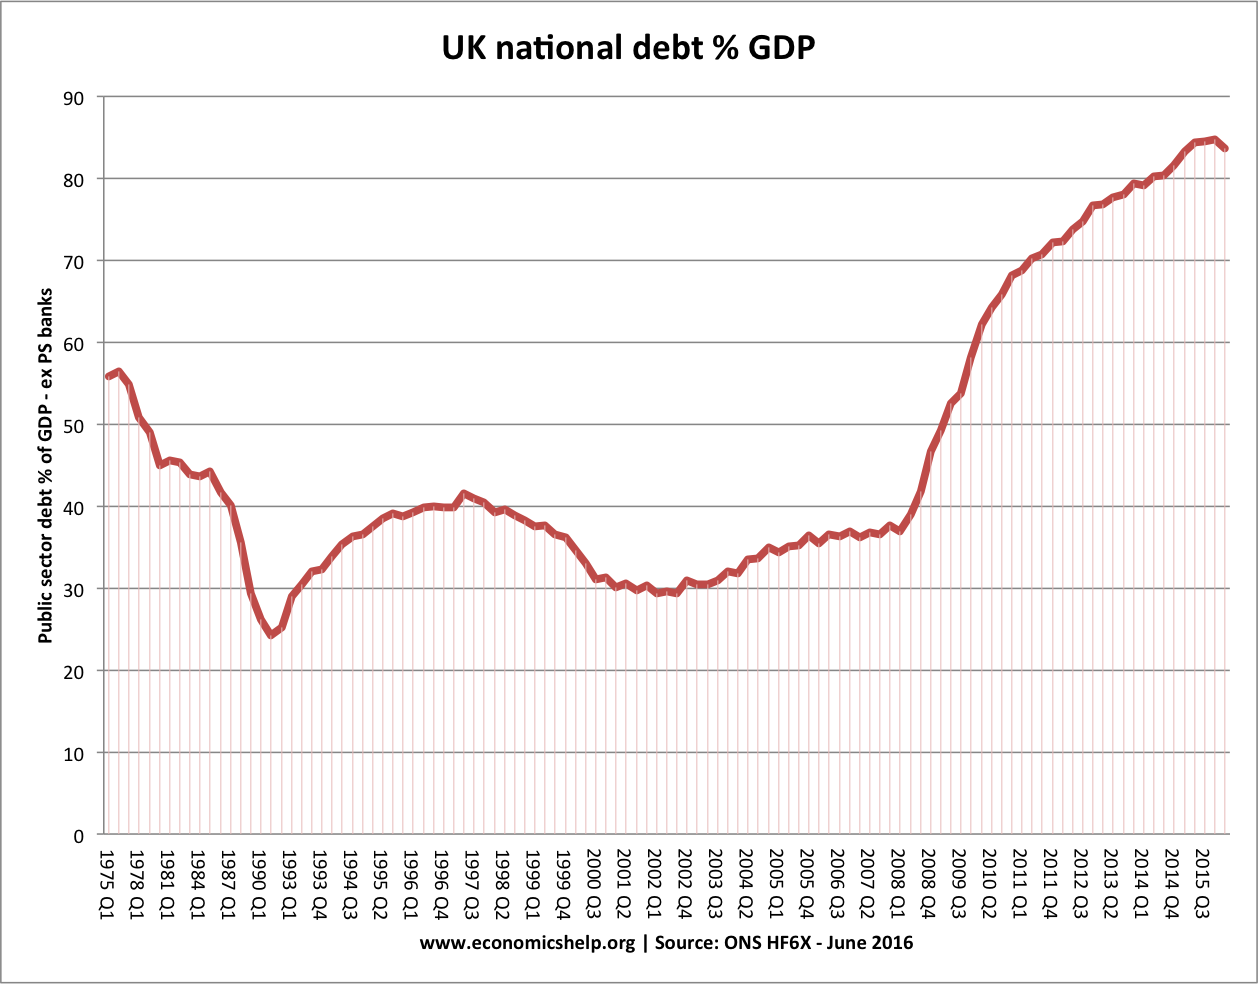 economics essays uk national debt as % of gdp continued to rise despite austerity measures of 2010 12